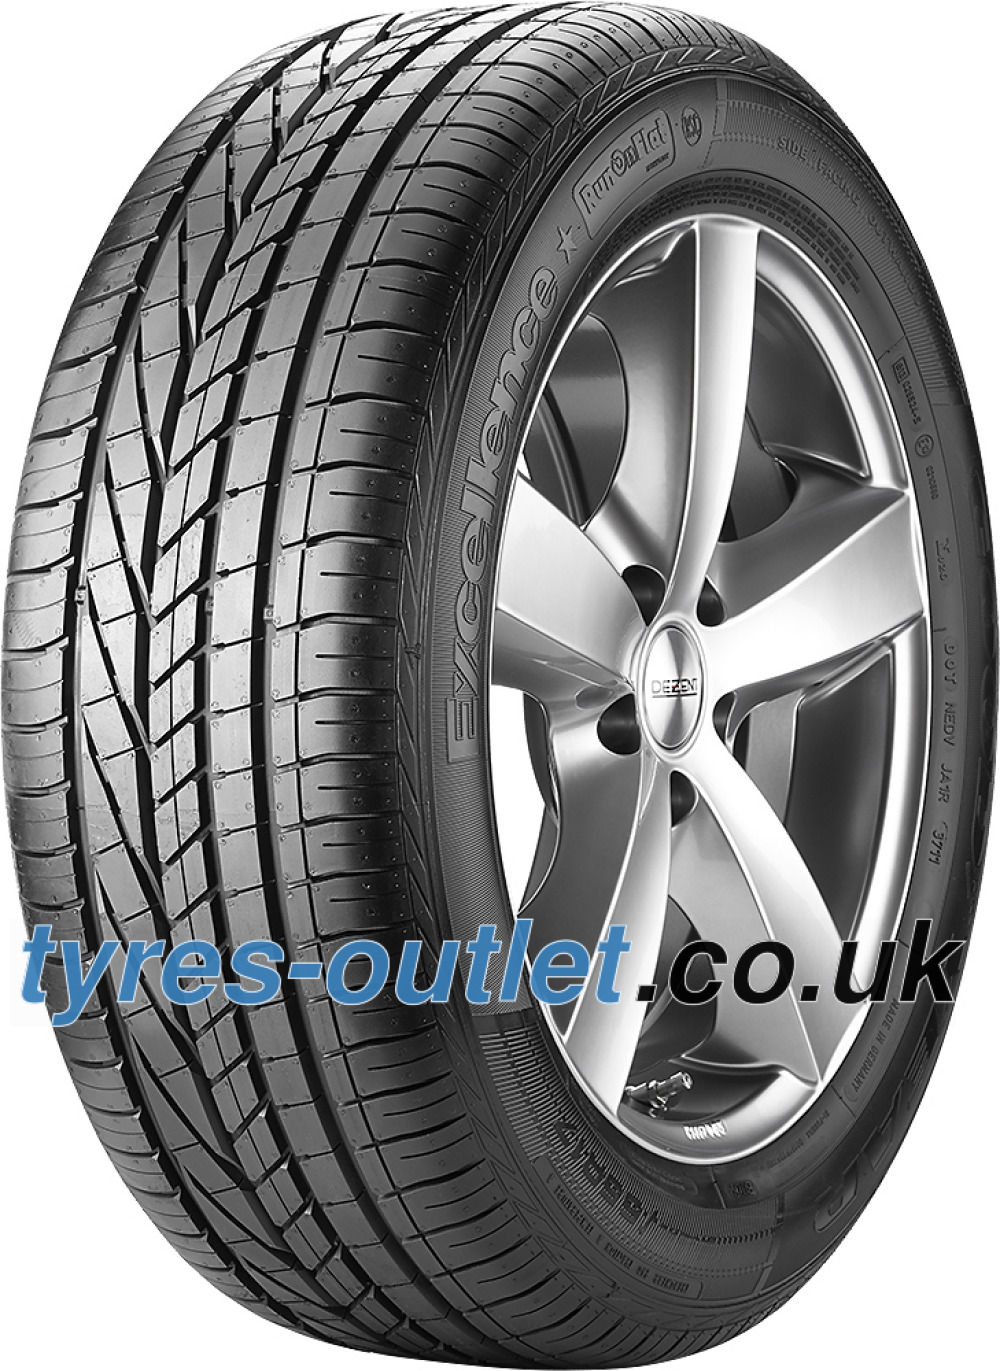 Goodyear Excellence ROF ( 255/45 R19 104Y XL AOE, SCT, with rim protection (MFS), runflat )